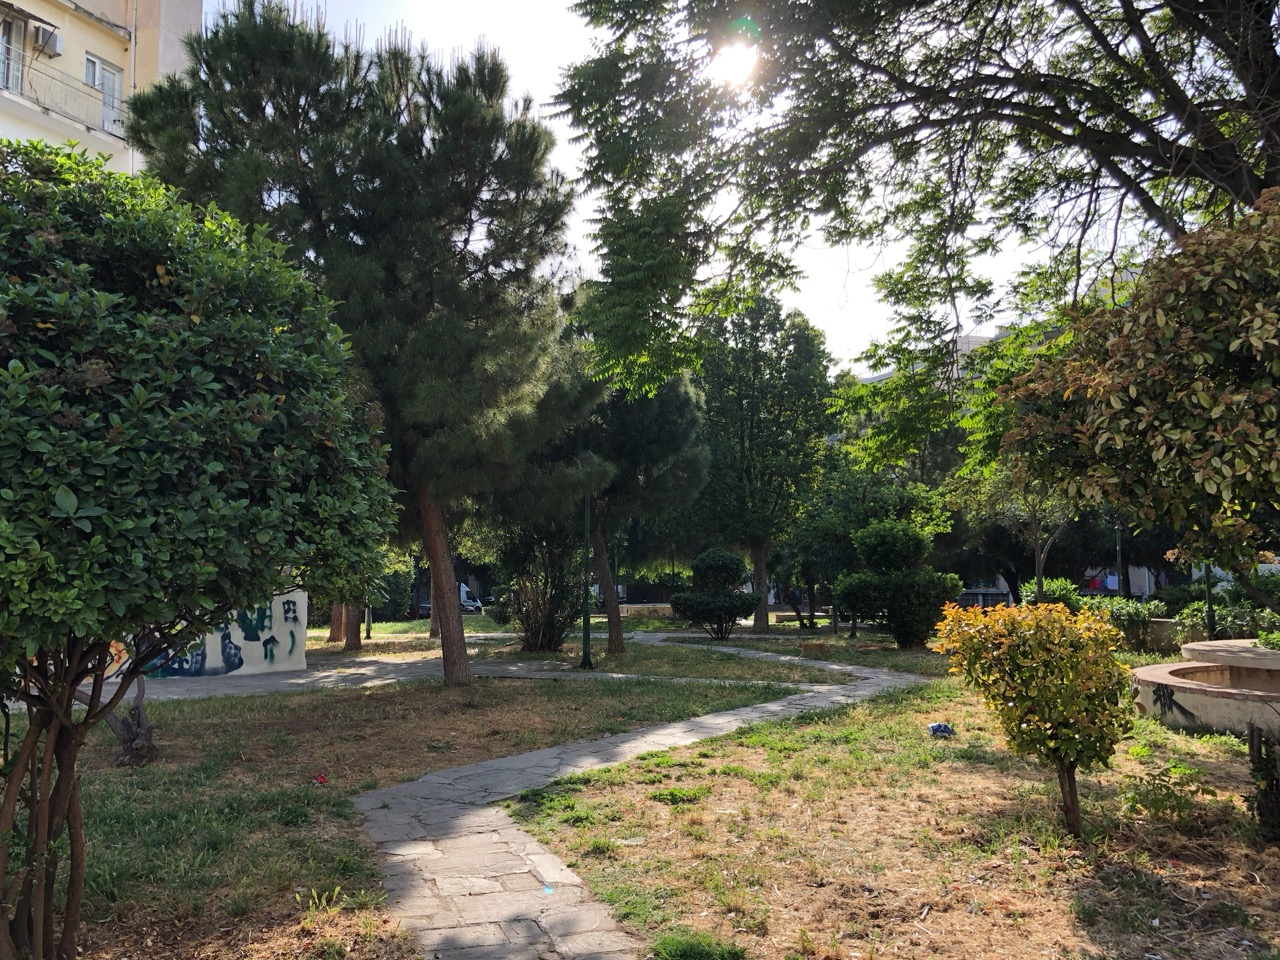 Athens side streets